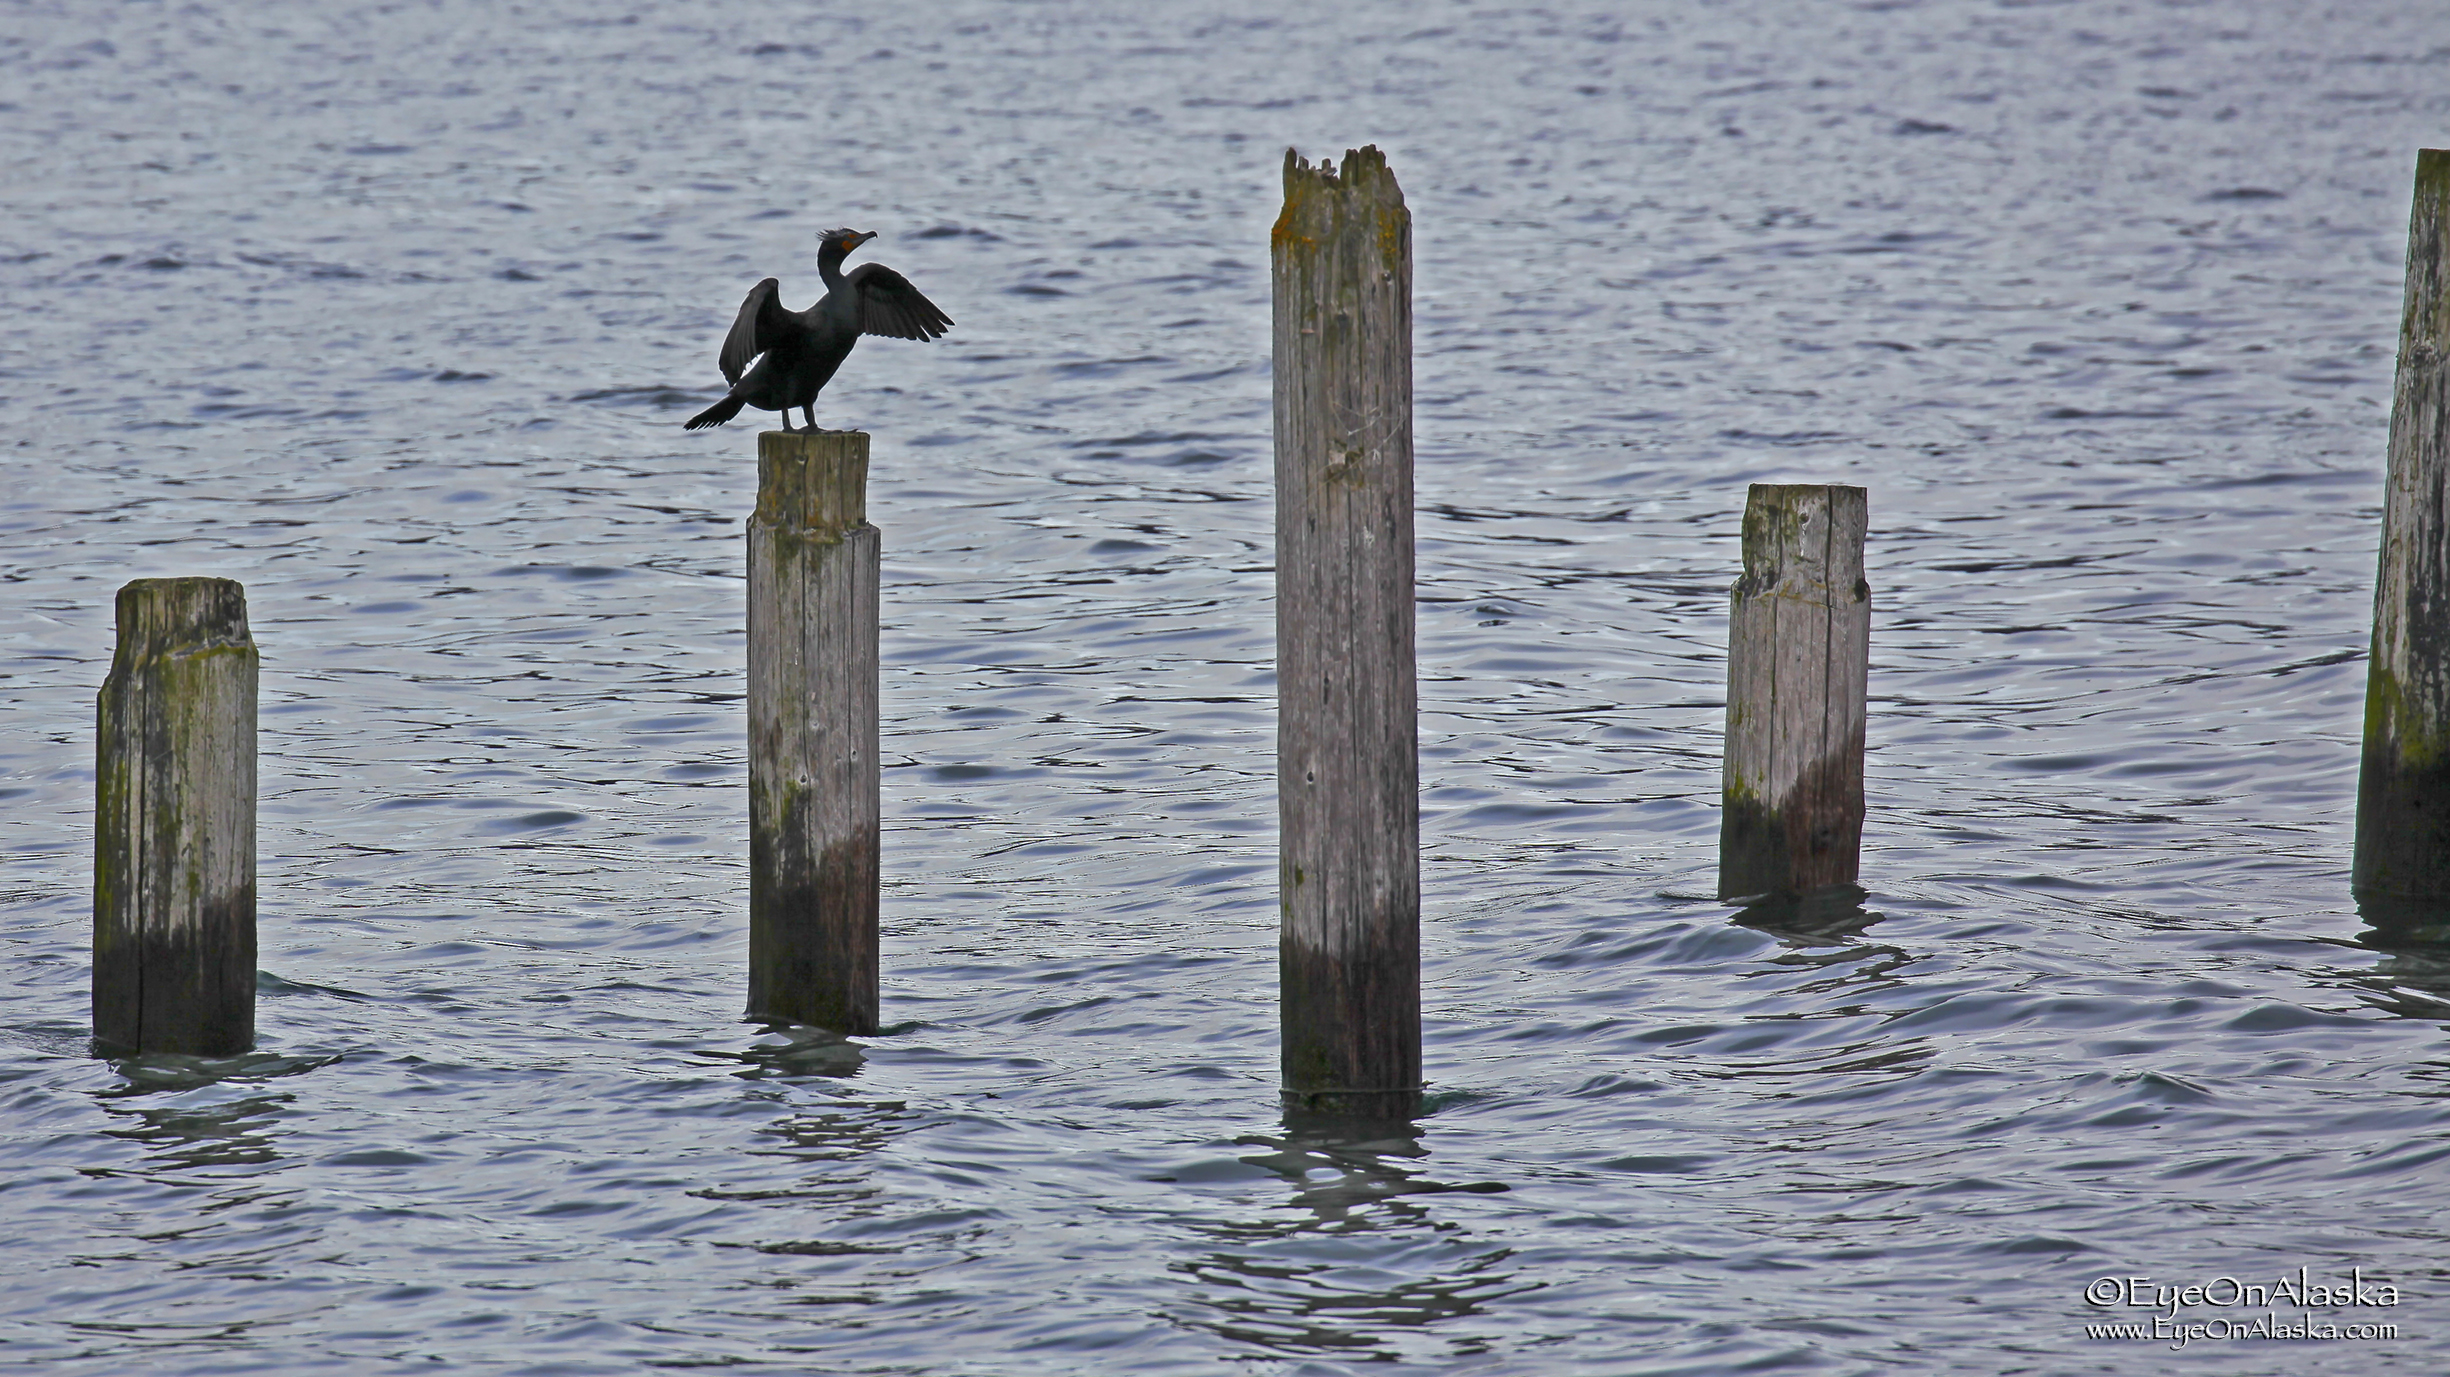 Cormorant drying his wings on the old dock pilings. These are leftover from the 1964 earthquake and tsunami that really hammered Seward.